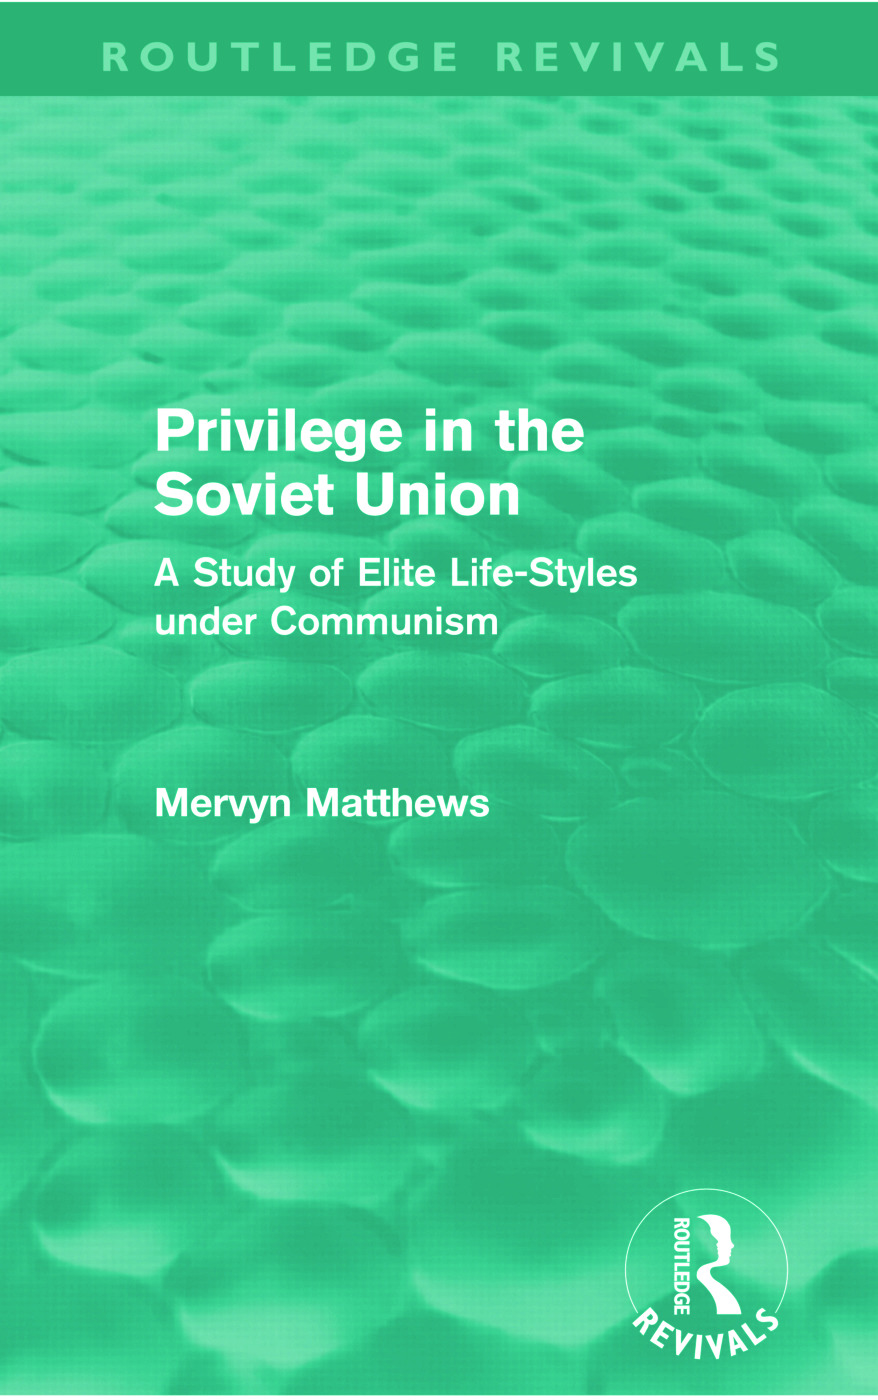 Privilege in the Soviet Union (Routledge Revivals): A Study of Elite Life-Styles under Communism (Paperback) book cover